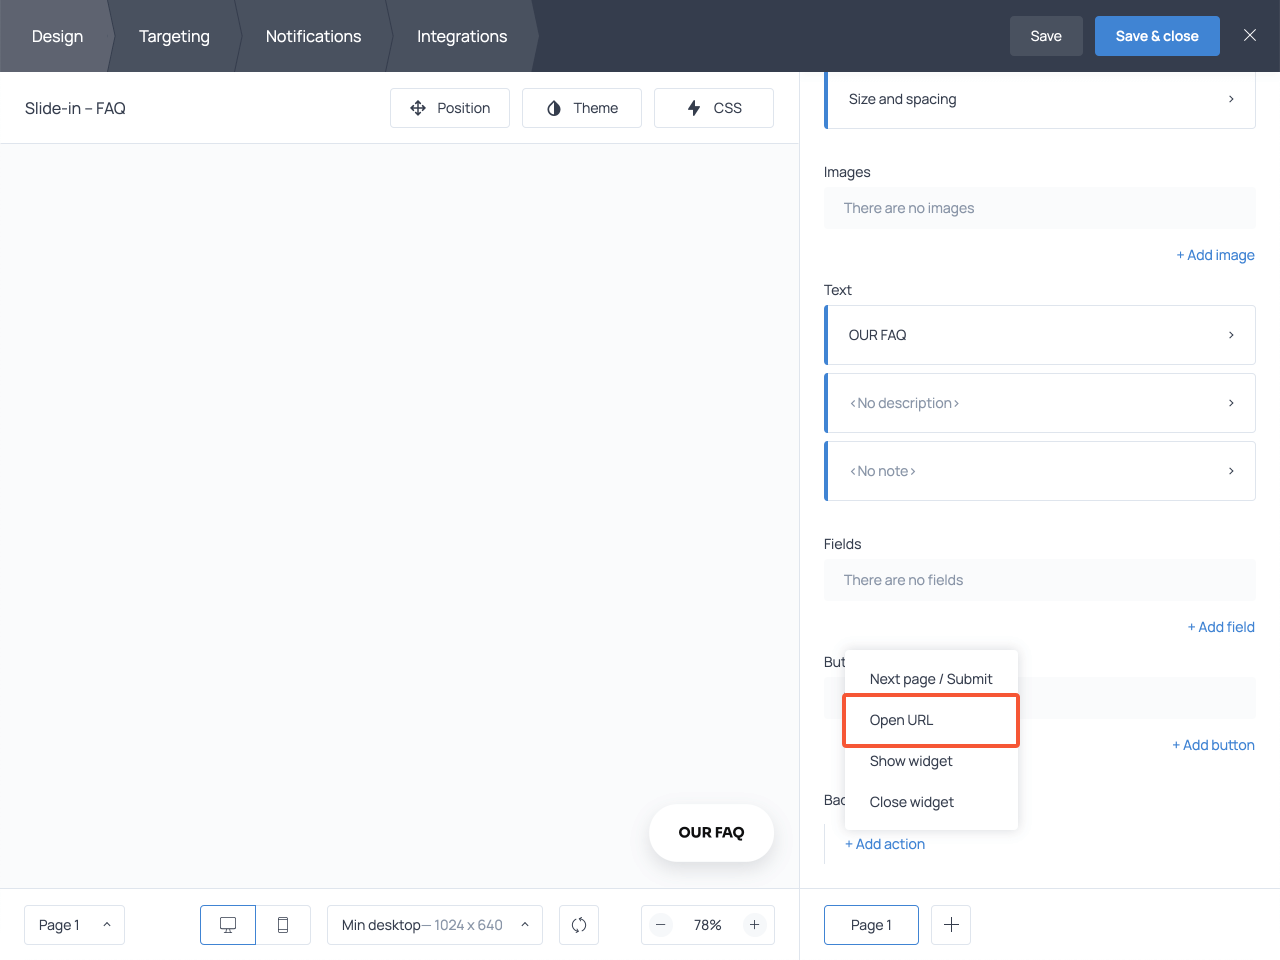 Adding an Open URL action in the Background click section